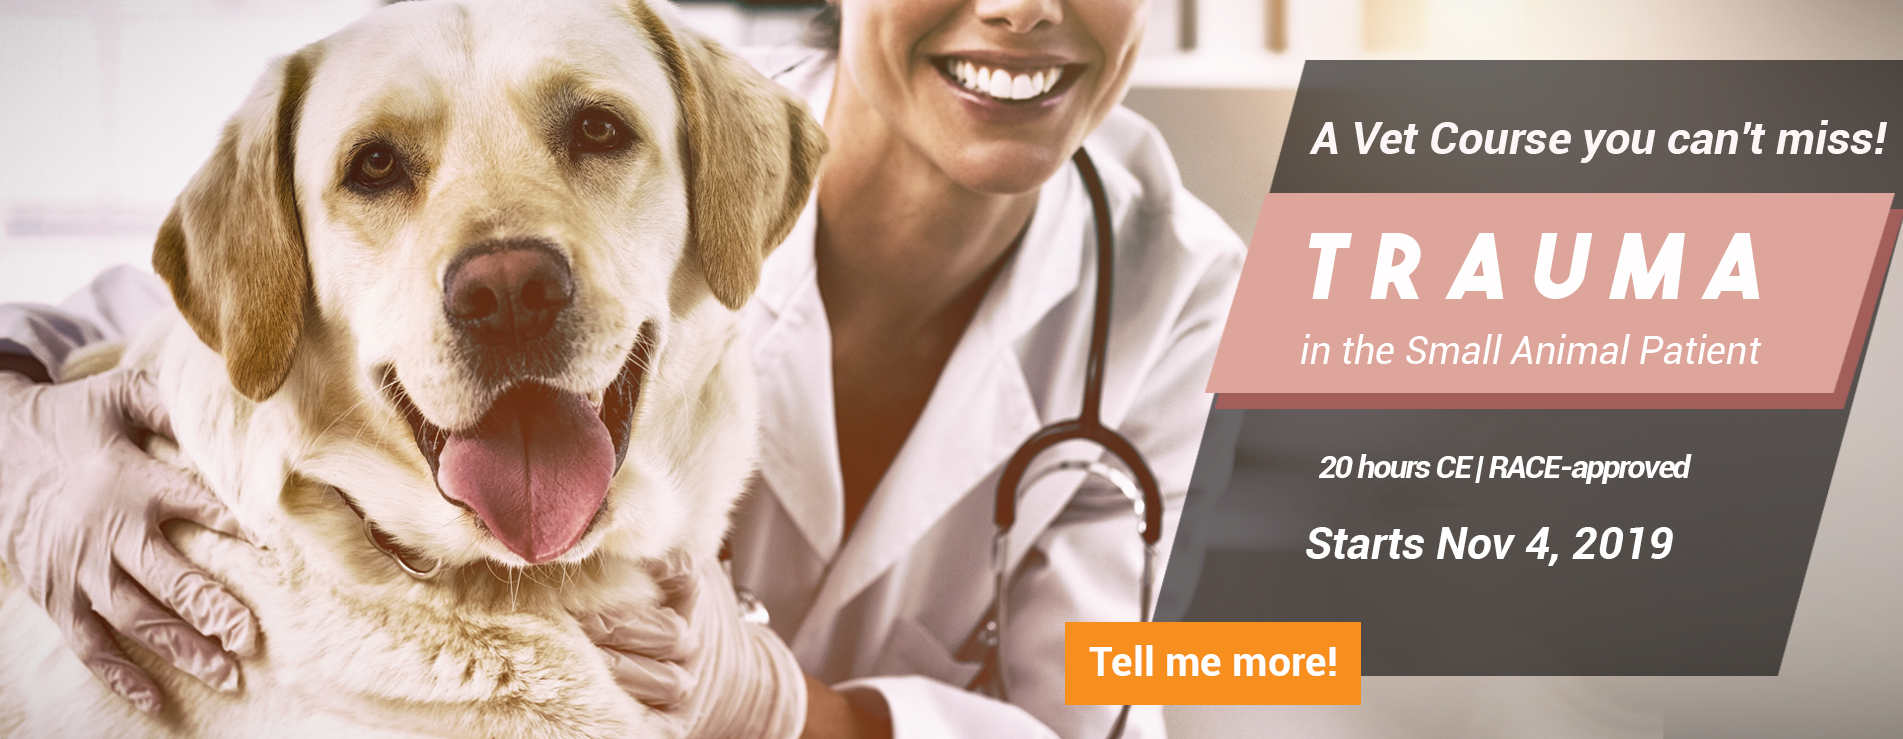 Vet Education - Get Your Veterinary Continuing Education